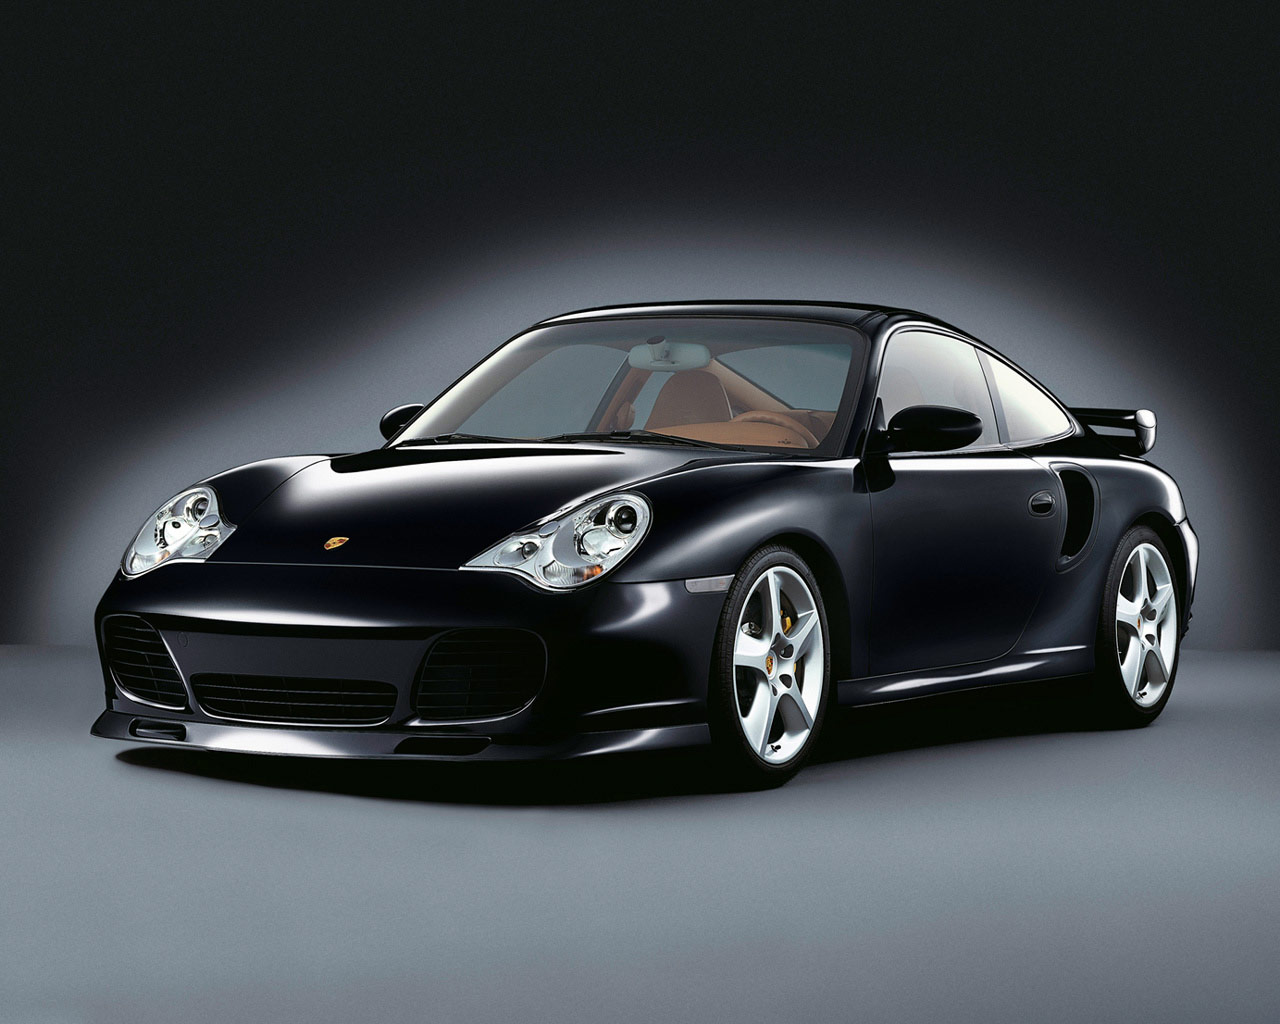 Best Porsche 911 on Porsche 911 Picture – Wallpaper Photo #207082 by .